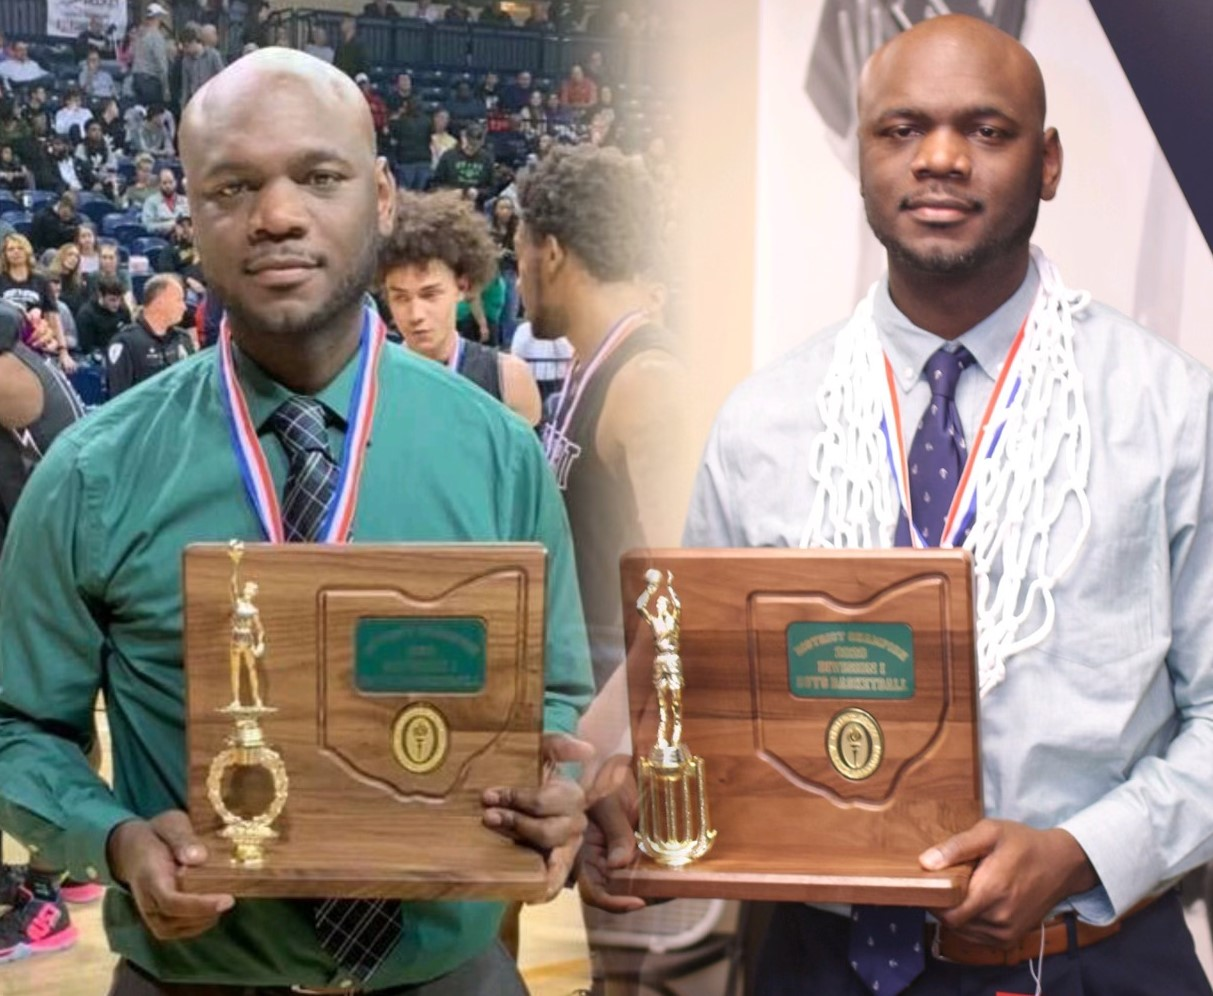 Coach Wortham selected to coach in the Ohio/Indiana All-Star game